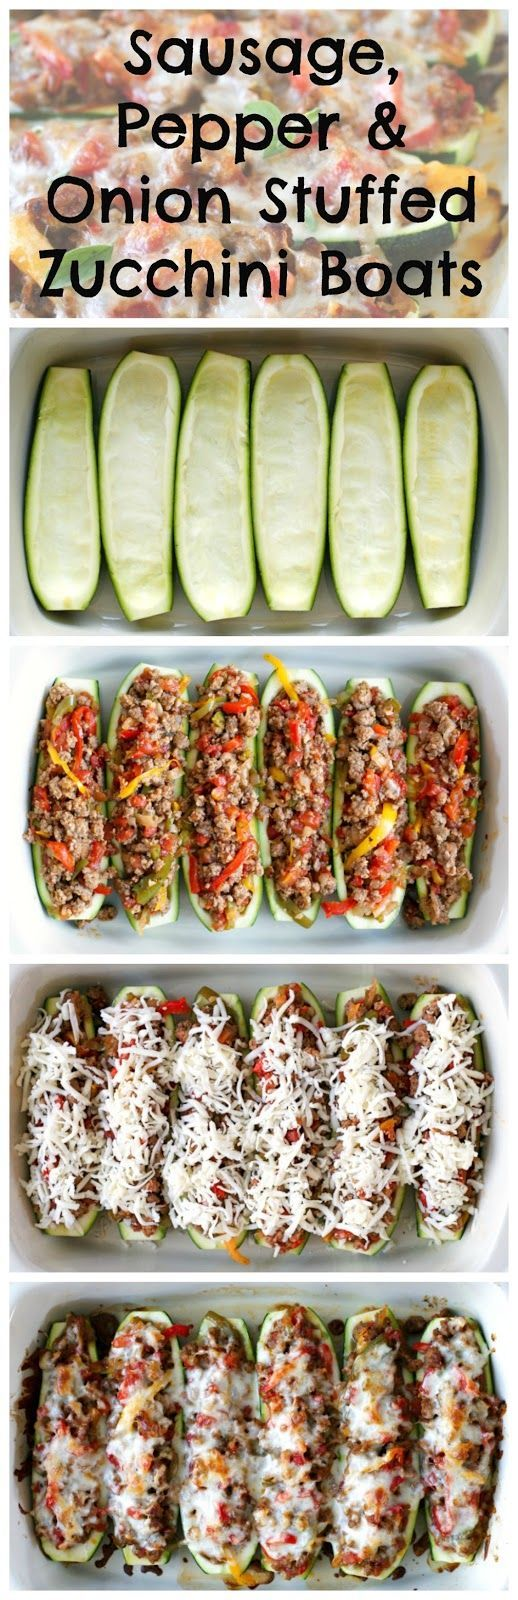 Sausage, Pepper, and Onion Stuffed Zucchini Boats are a twist on the classic northern dish, made by swapping the roll with bright and fresh zucchini boats! | thetwobiteclub.com | #JDFamilyTable #ad